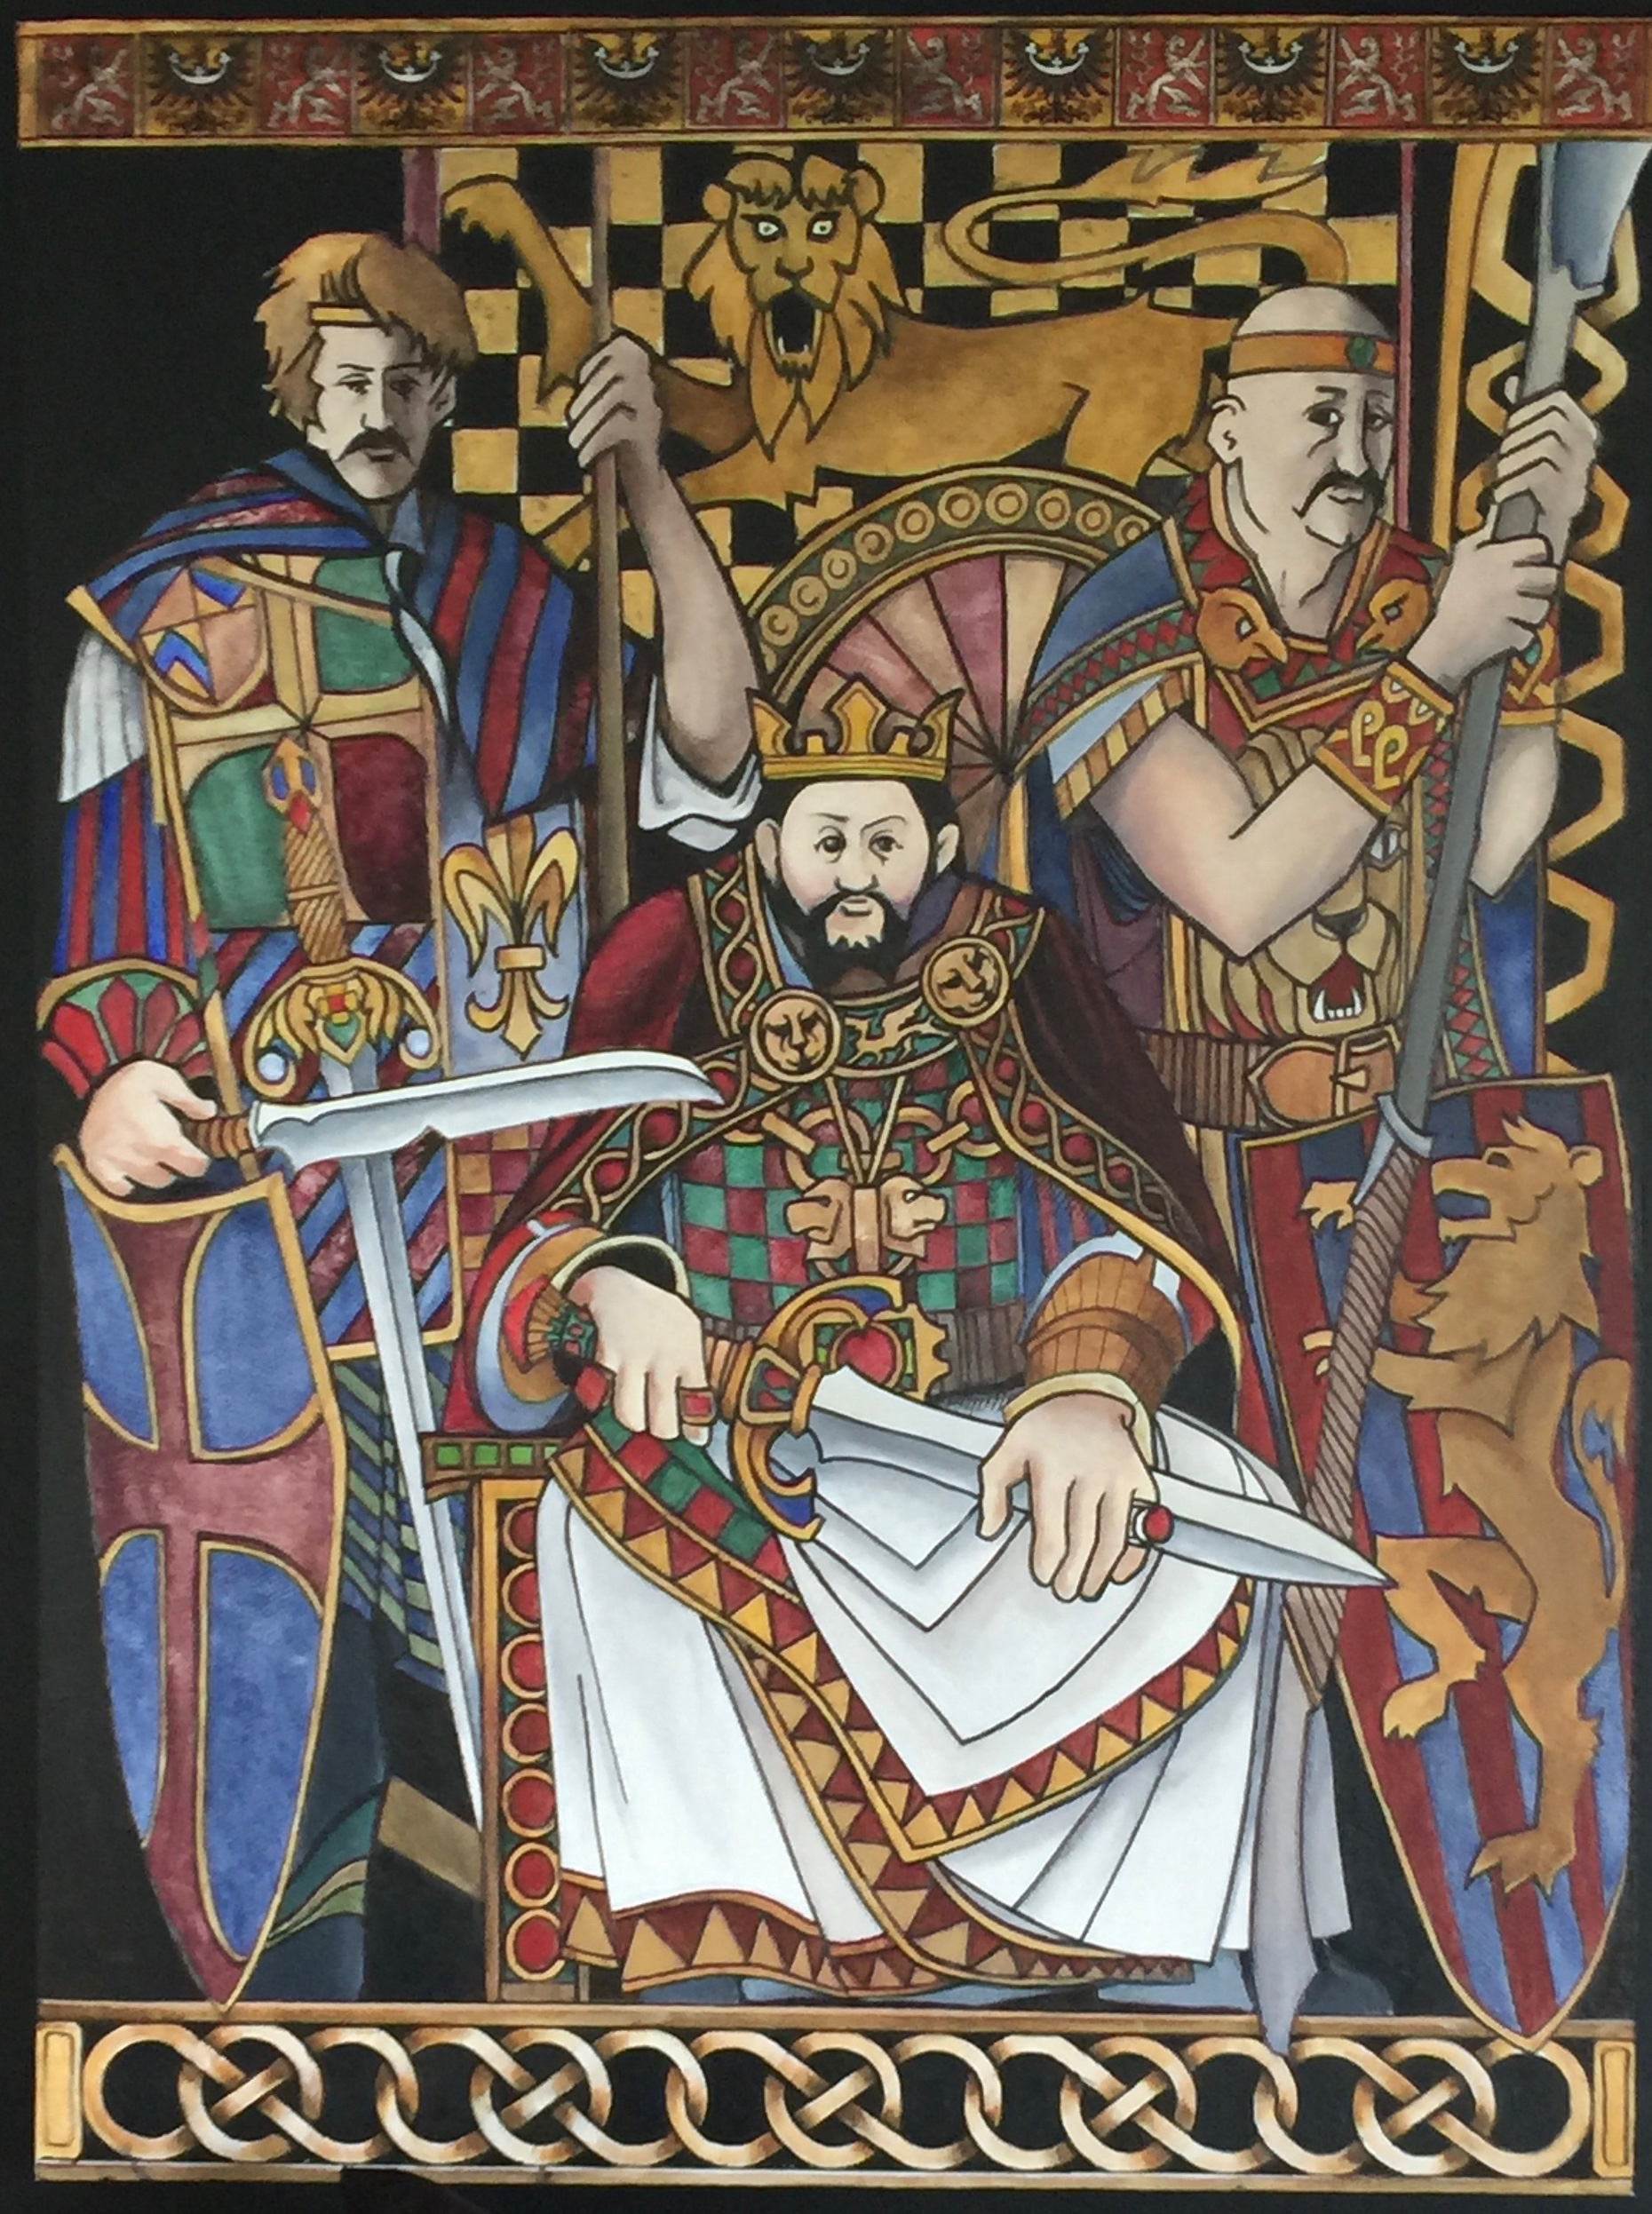 A Heraldic style painting depicting King Arthur and two Knights of the Round Table.